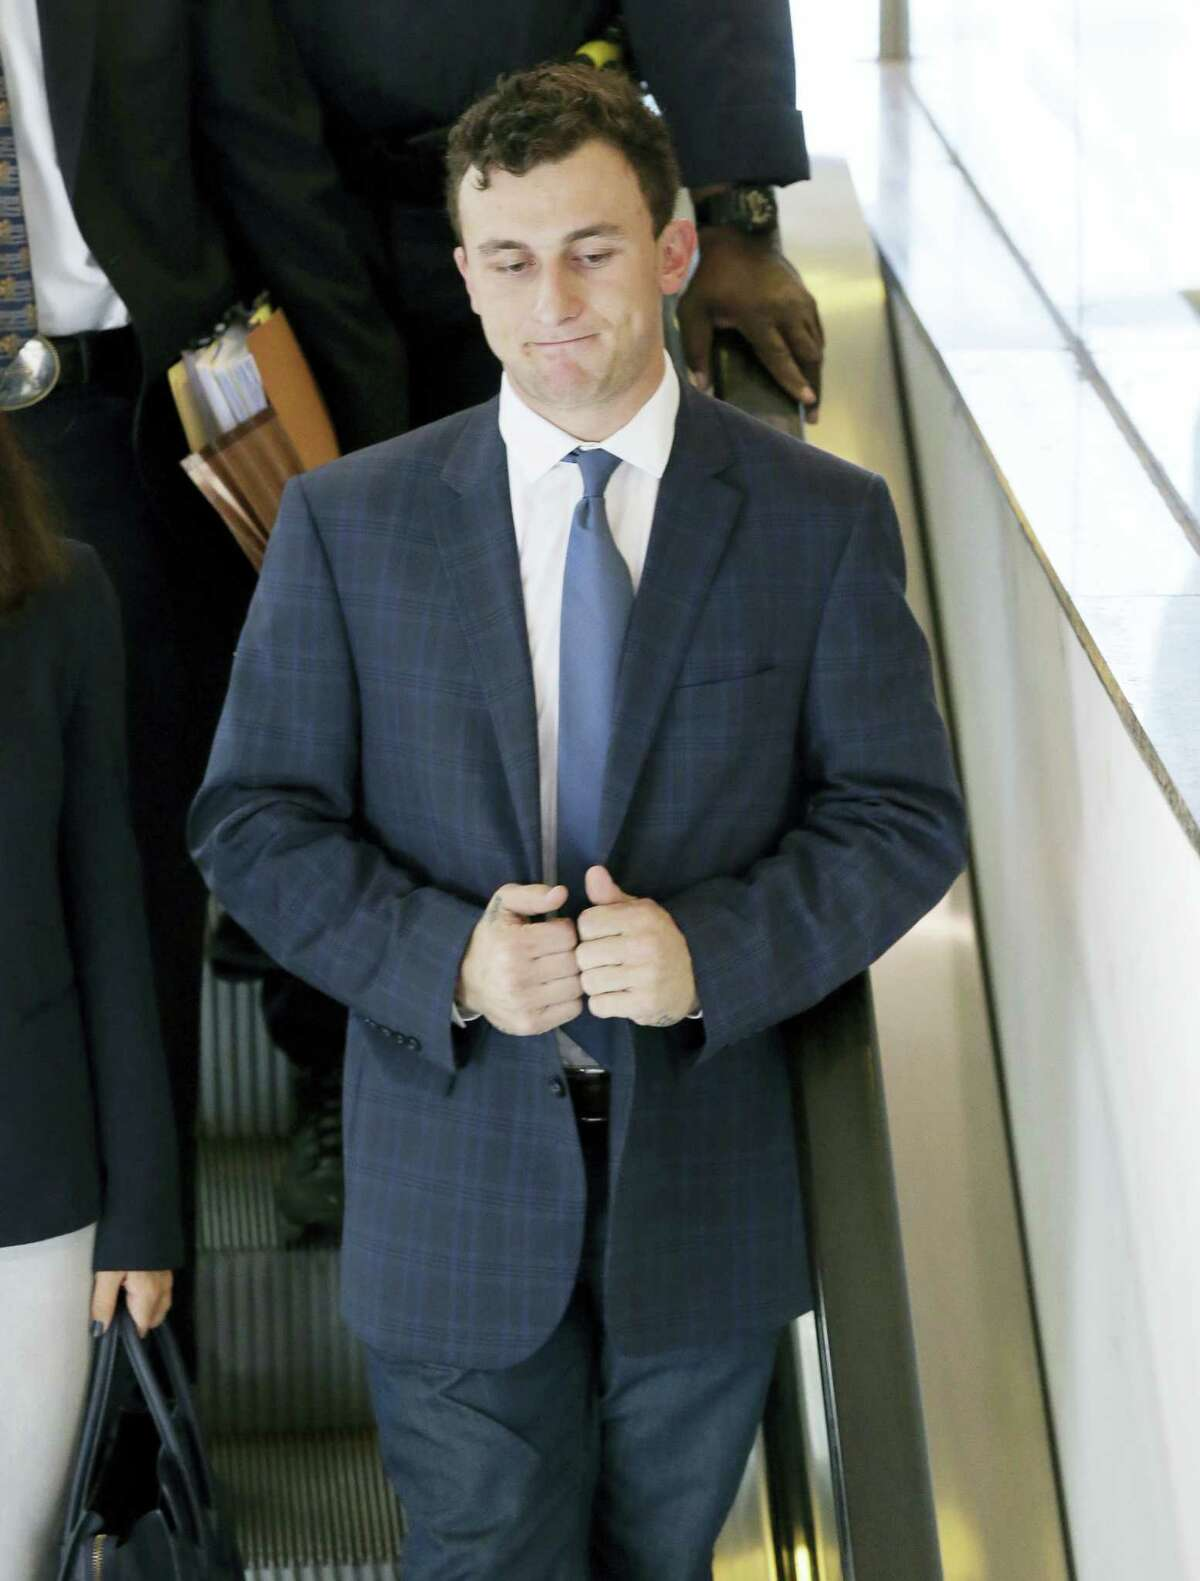 Former Cleveland Browns quarterback Johnny Manziel takes an escalator after making his initial court appearance, Thursday, May 5, 2016, in Dallas. The Heisman Trophy winner and former Texas A&M star was indicted by a grand jury last month after his ex-girlfriend alleged he hit her and threatened to kill her during a night out in January.